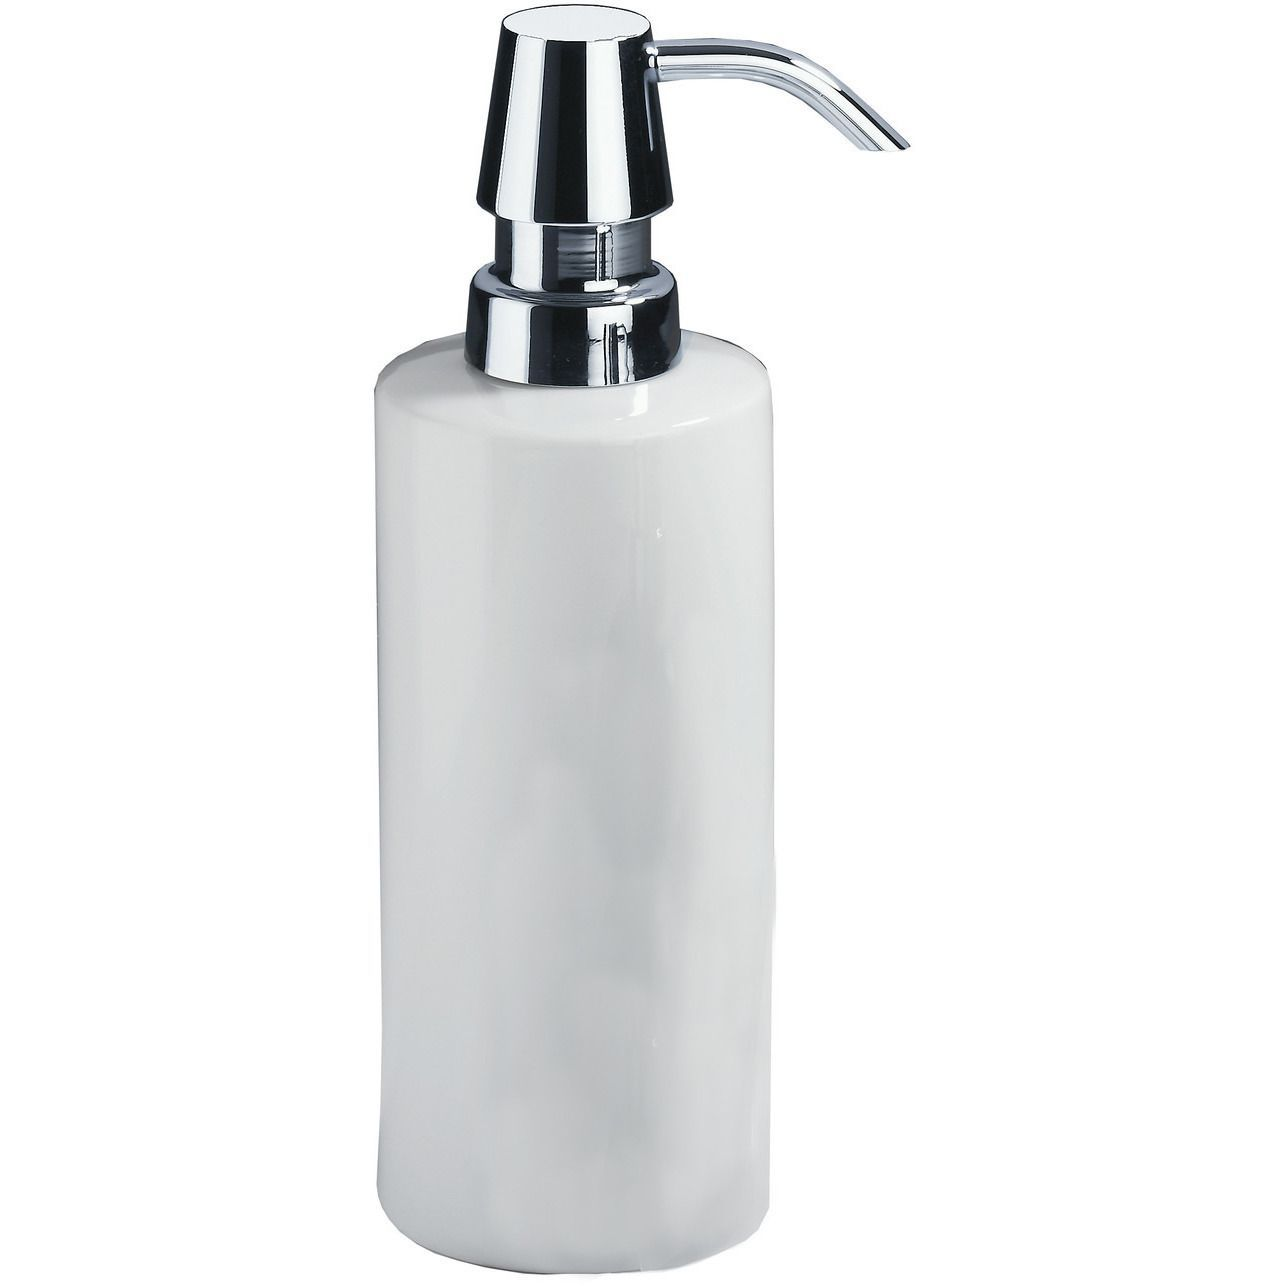 Dwba Soap Lotion Dispenser Pump For Kitchen Bathroom Countertops